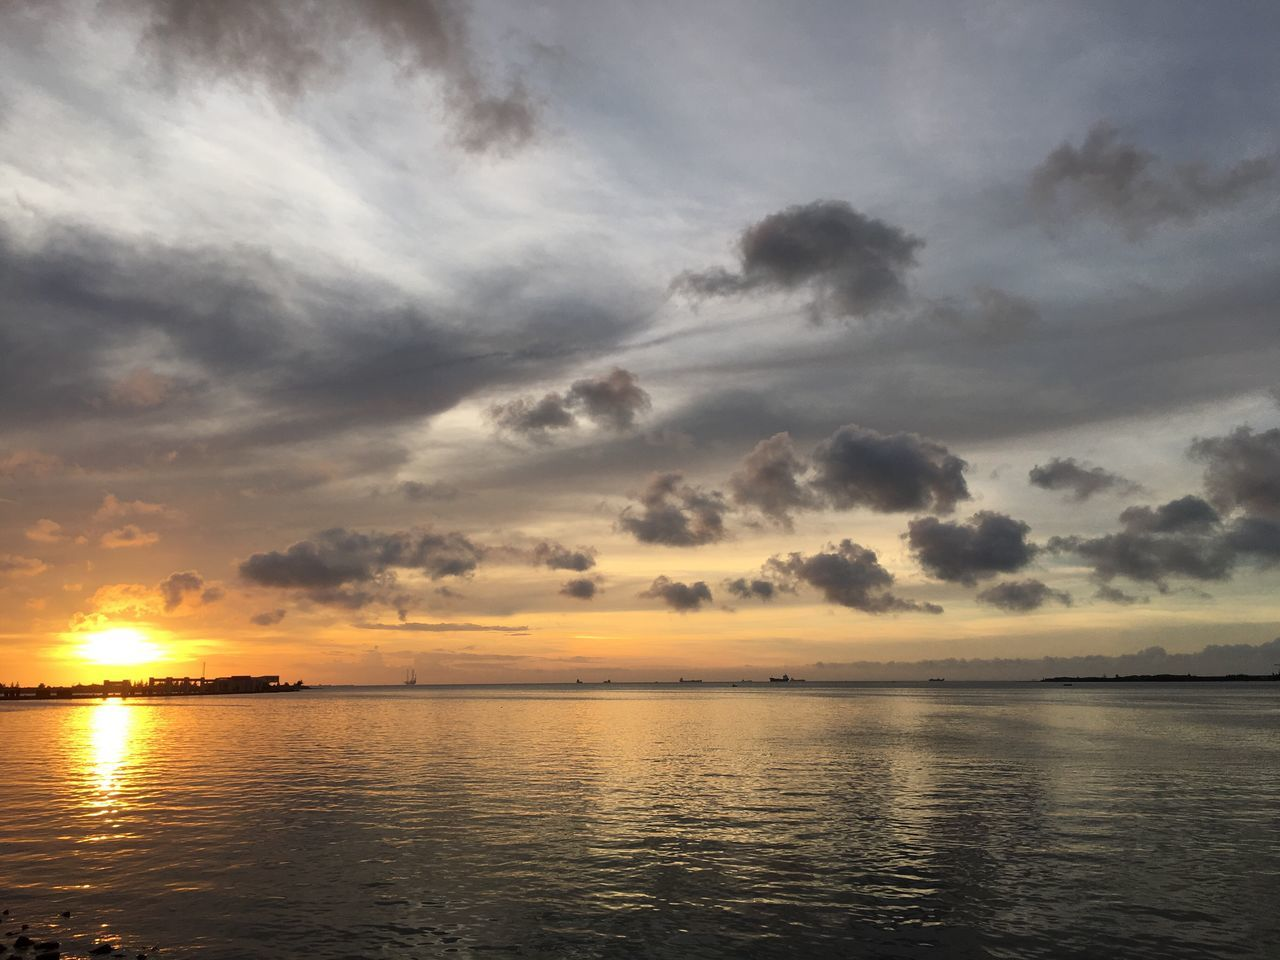 Sea Sunset Sky Water Scenics Nature Beauty In Nature Cloud - Sky Idyllic Tranquil Scene No People Outdoors Horizon Over Water Day